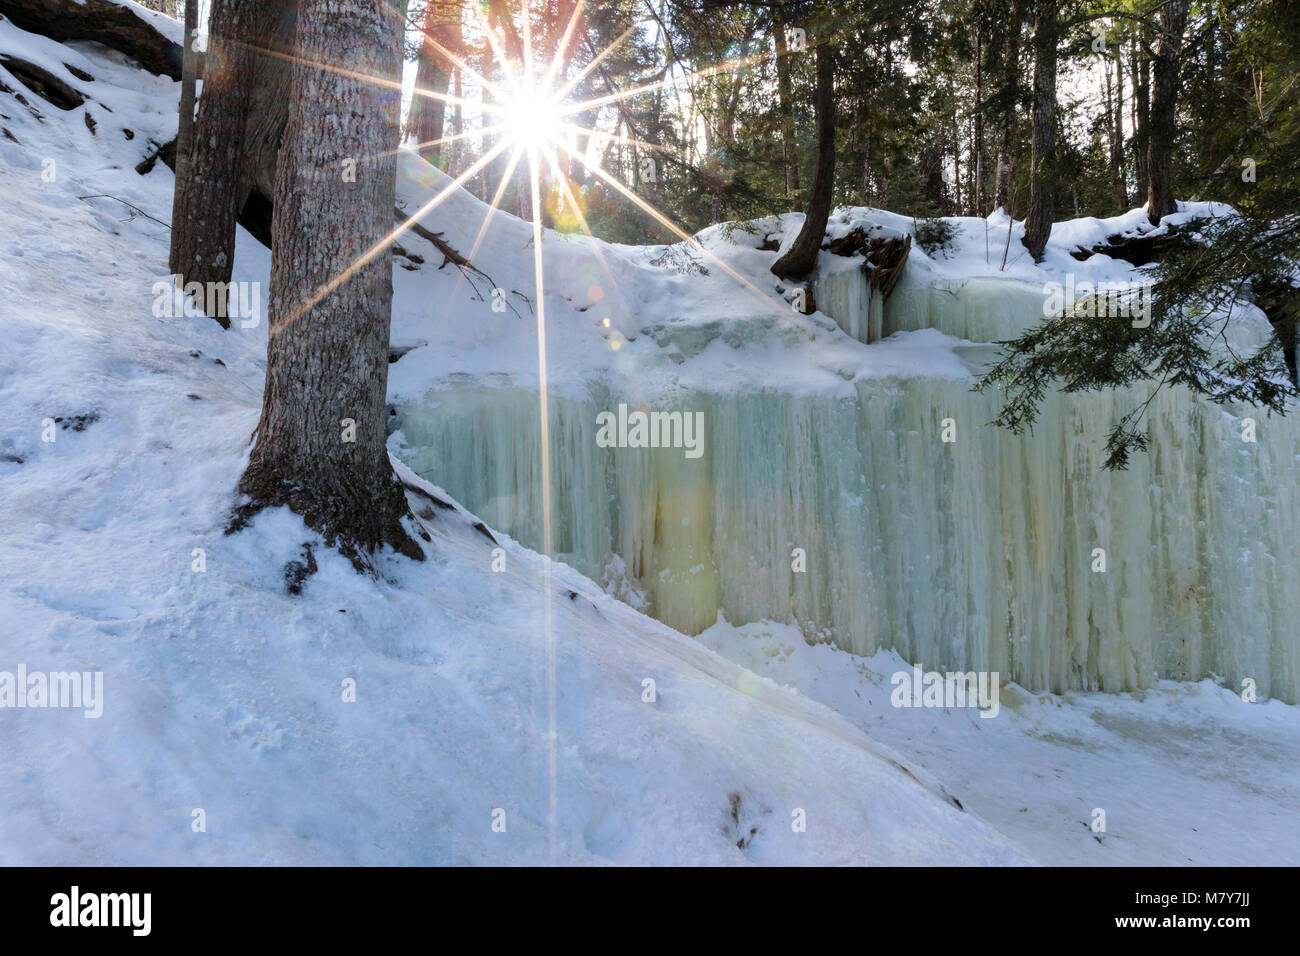 Eben Ice Caves in Michigan's Upper Peninsula spill over a rock ledge, like a waterfall, creating patterned ice - Stock Image